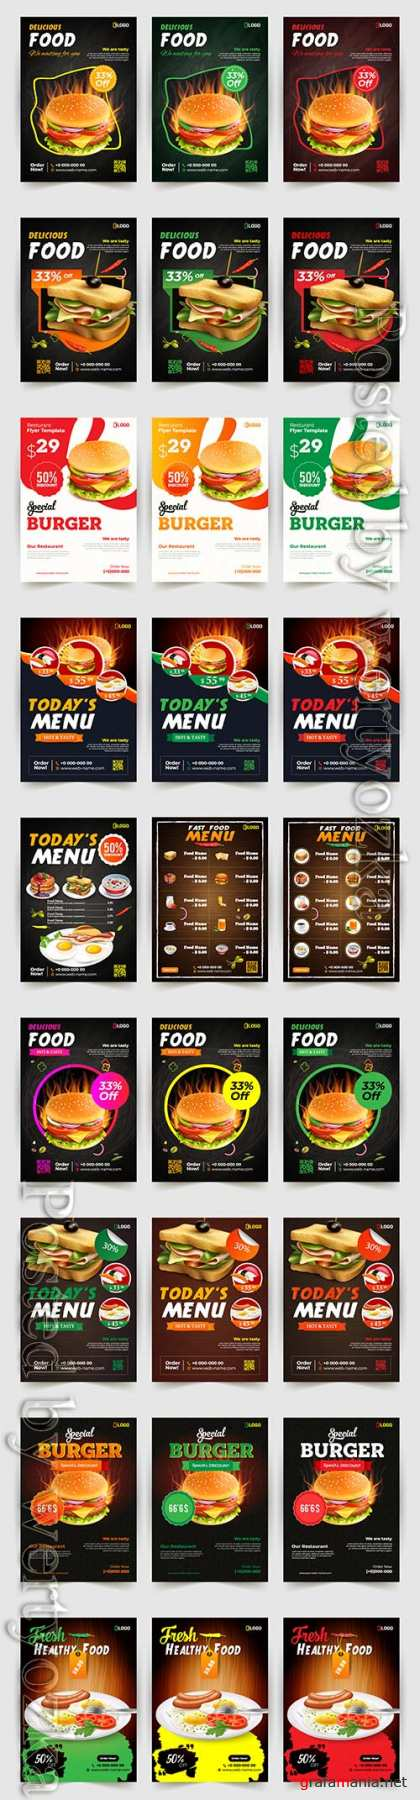 Fast food flyer design vector template, brochure flat design